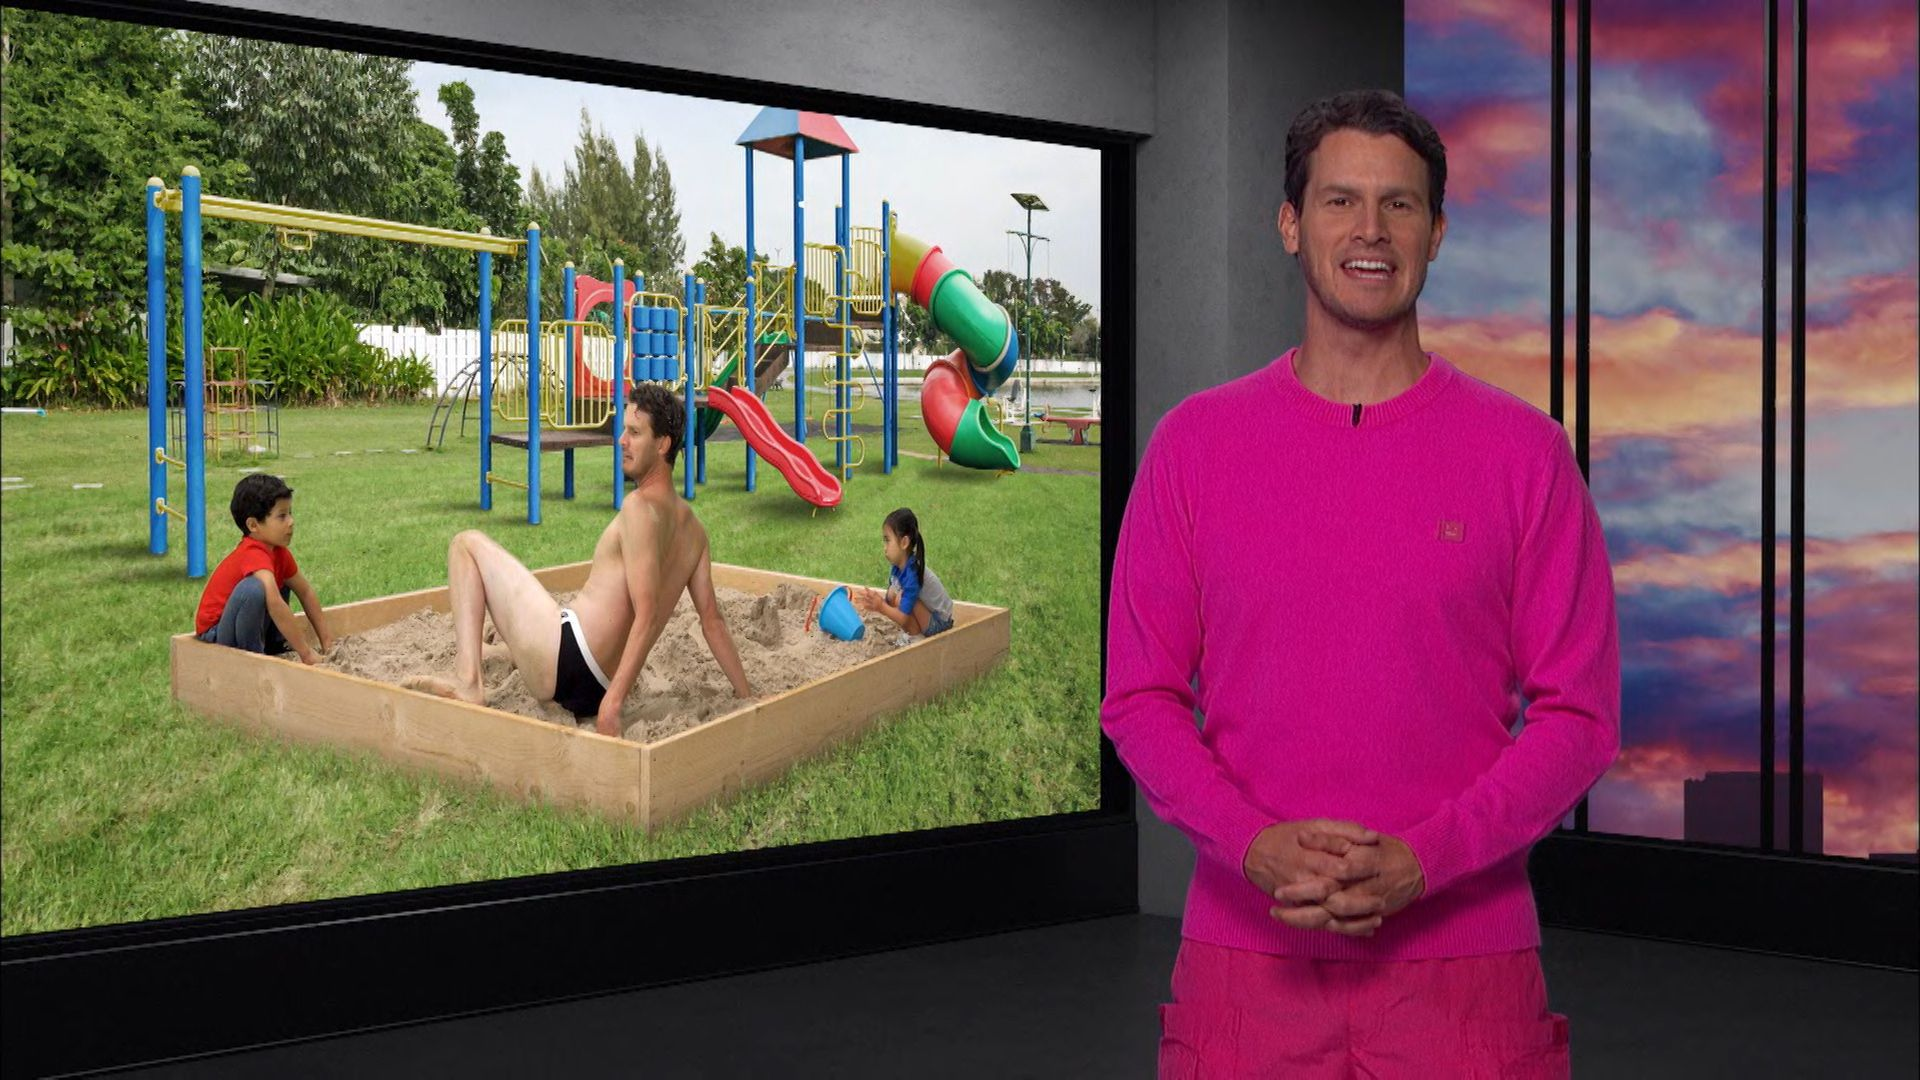 Tosh 0 September 17 2019 Stevewilldoit Full Episode Comedy Central 5,863 likes · 42 talking about this. tosh 0 september 17 2019